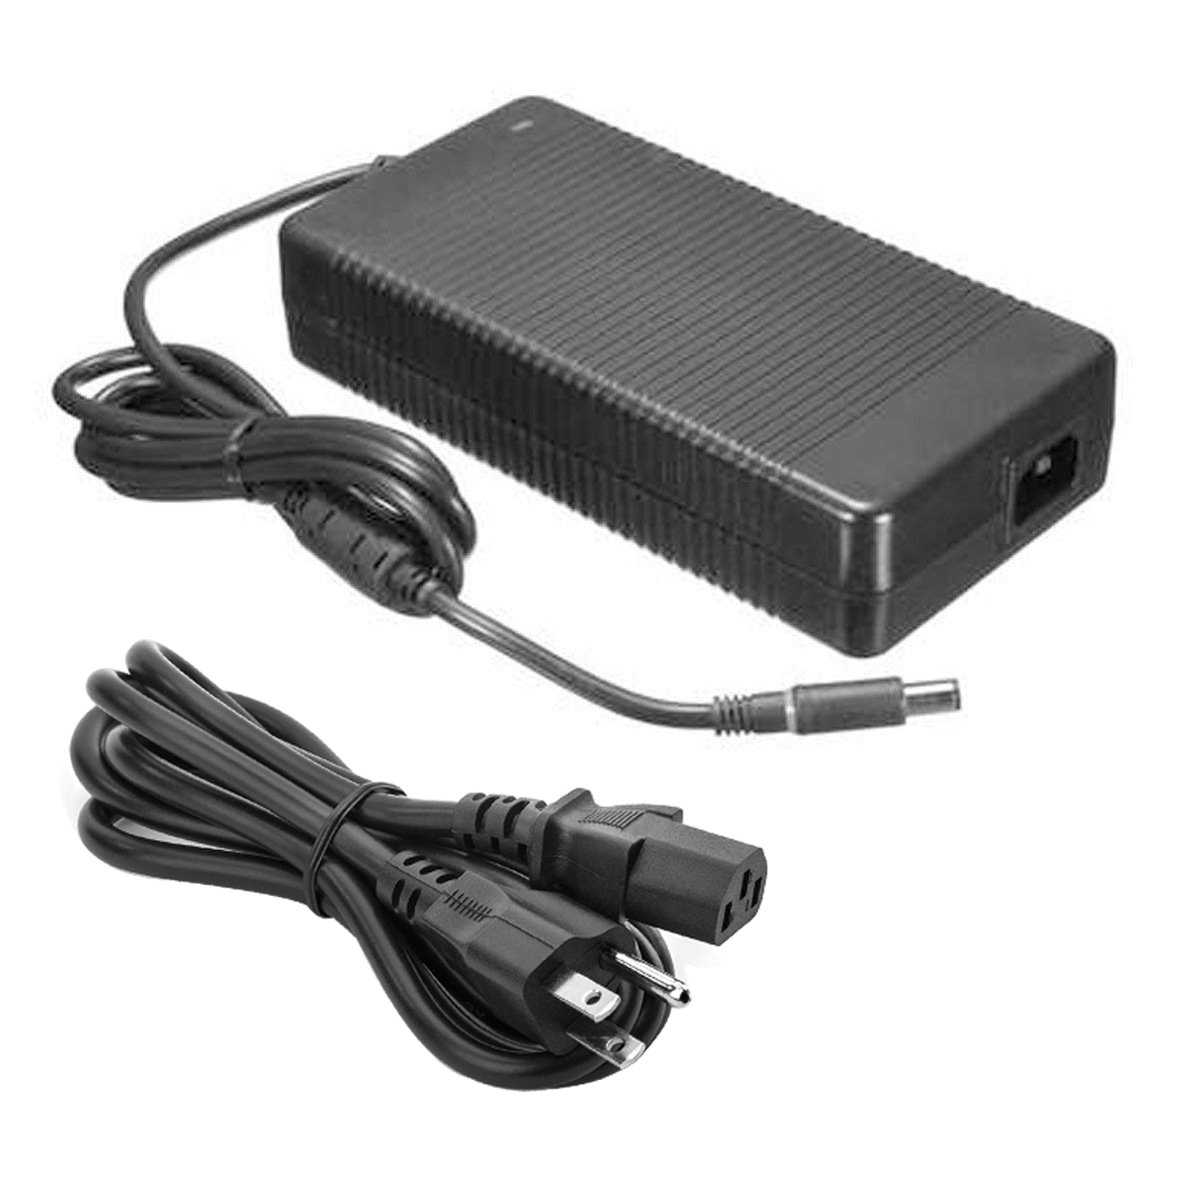 Laimate 240W 19.5V 12.3A New Replacement AC Computer Laptop Charger Adapter Power supply for Dell Alienware M17X 15 R1 R2 R5 Precision 7510 330-4128, 330-3514, J938H, Y044M, U896K, J211H, PA-9E M6400